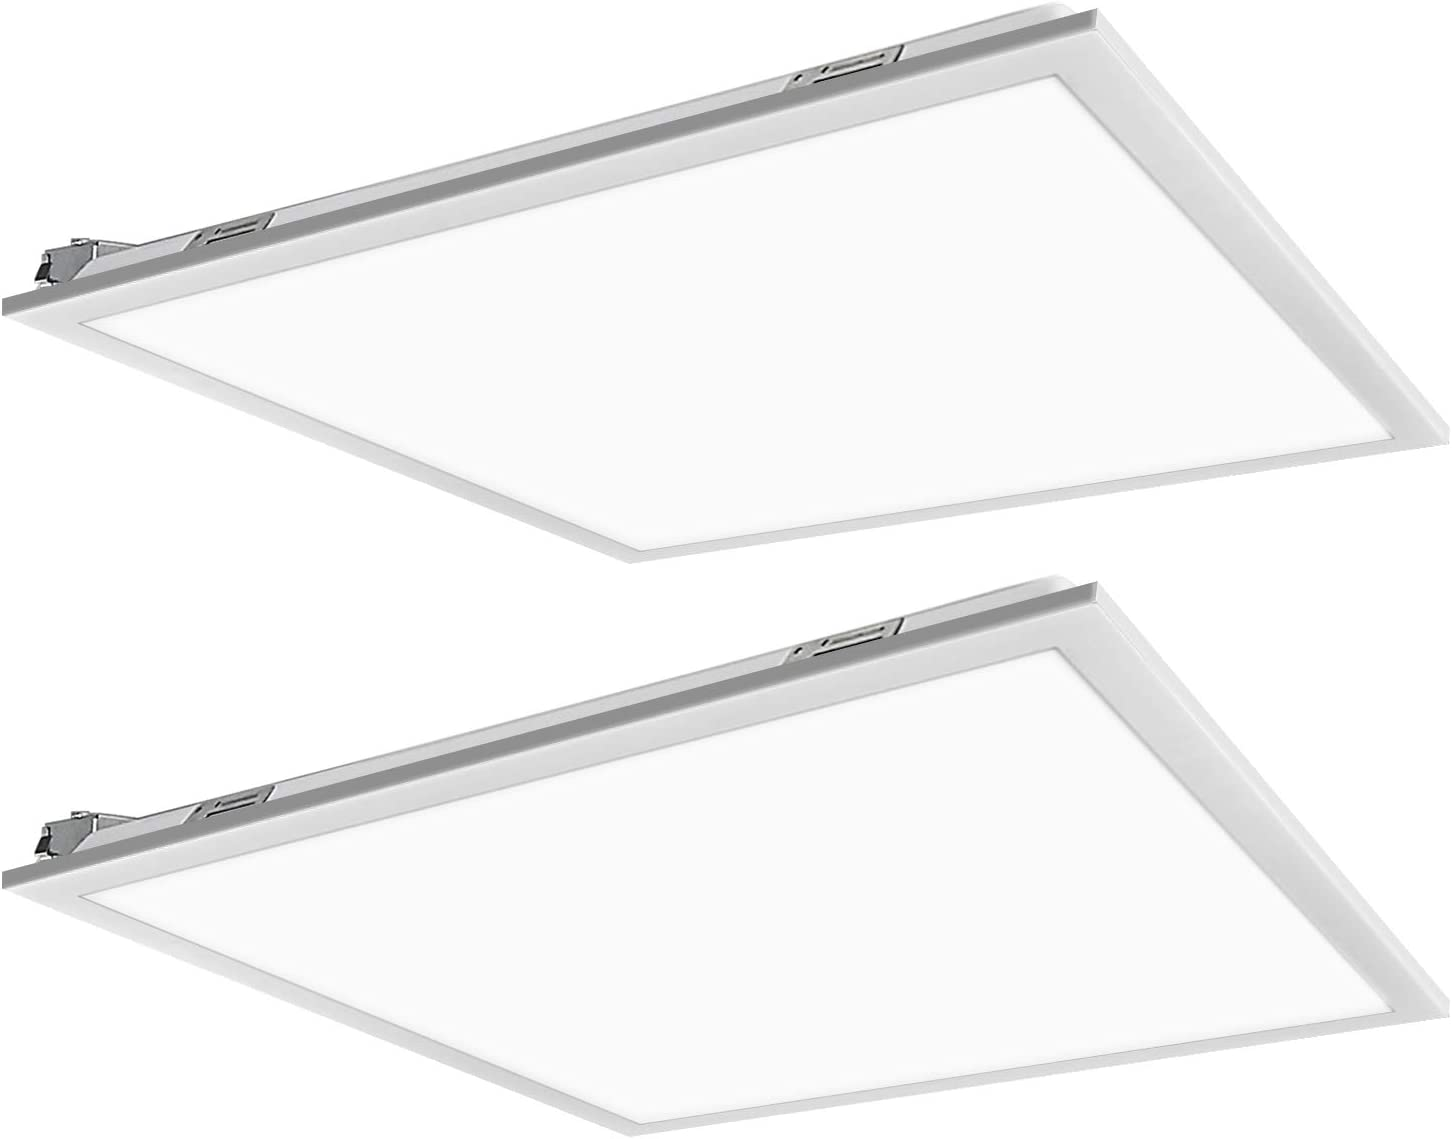 2x2 FT White LED Flat Panel Troffer Light, 40W 4000K Recessed Back-Lit Drop Ceiling Light, 4400lm Lay in Fixture for Office, 0-10V Dimmable, 3-Lamp F17T8 Fixture Replacement, 2 Pack